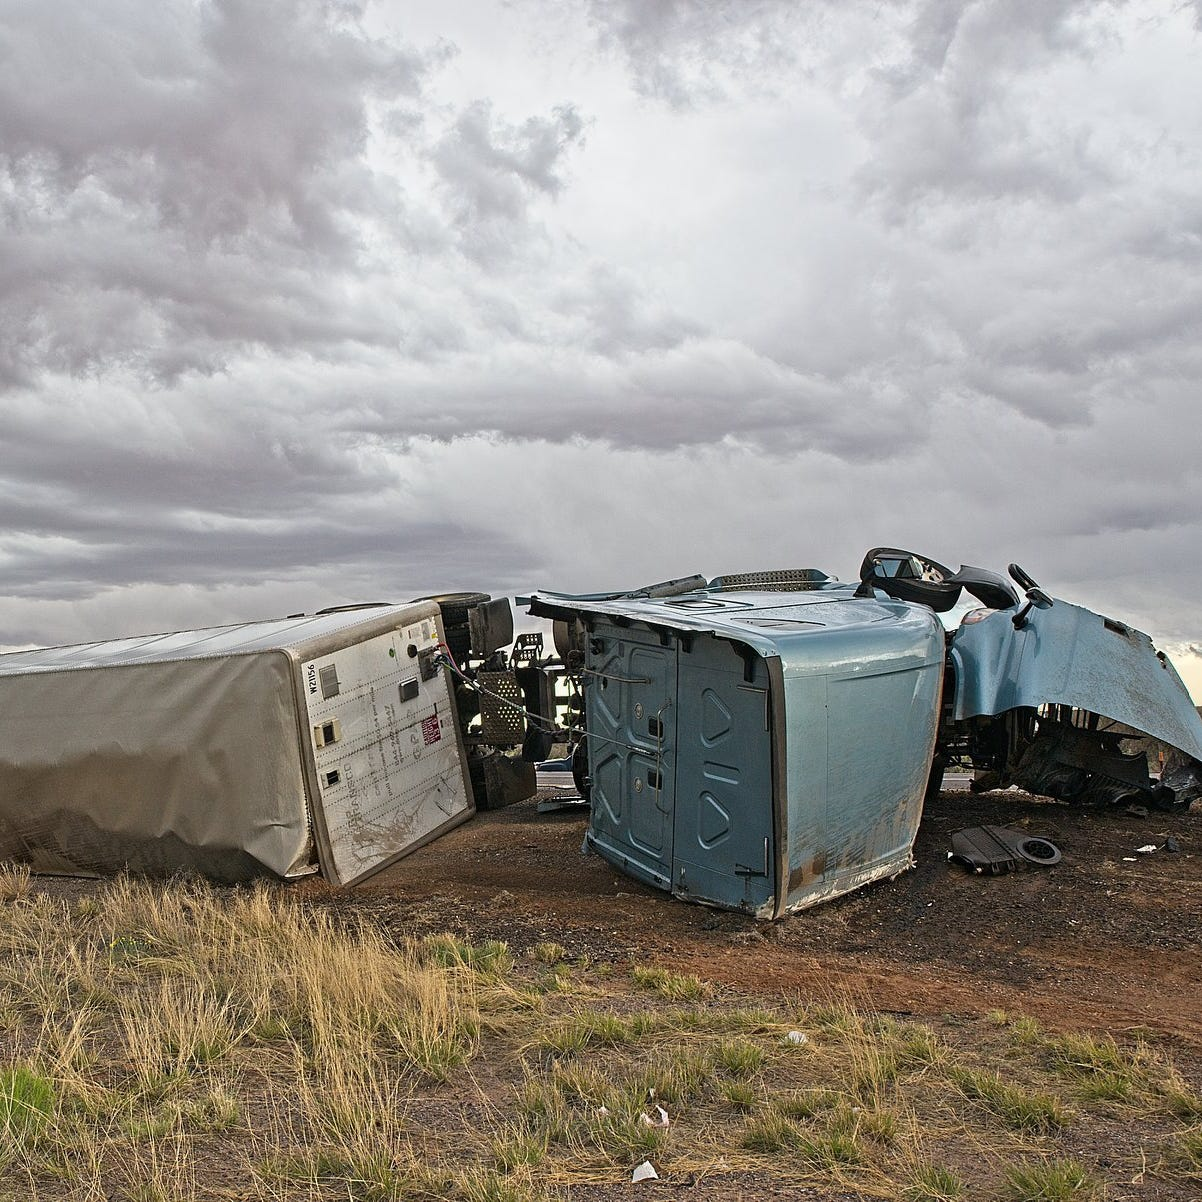 Family witnesses semi-truck crash west of Las Cruces on I-10